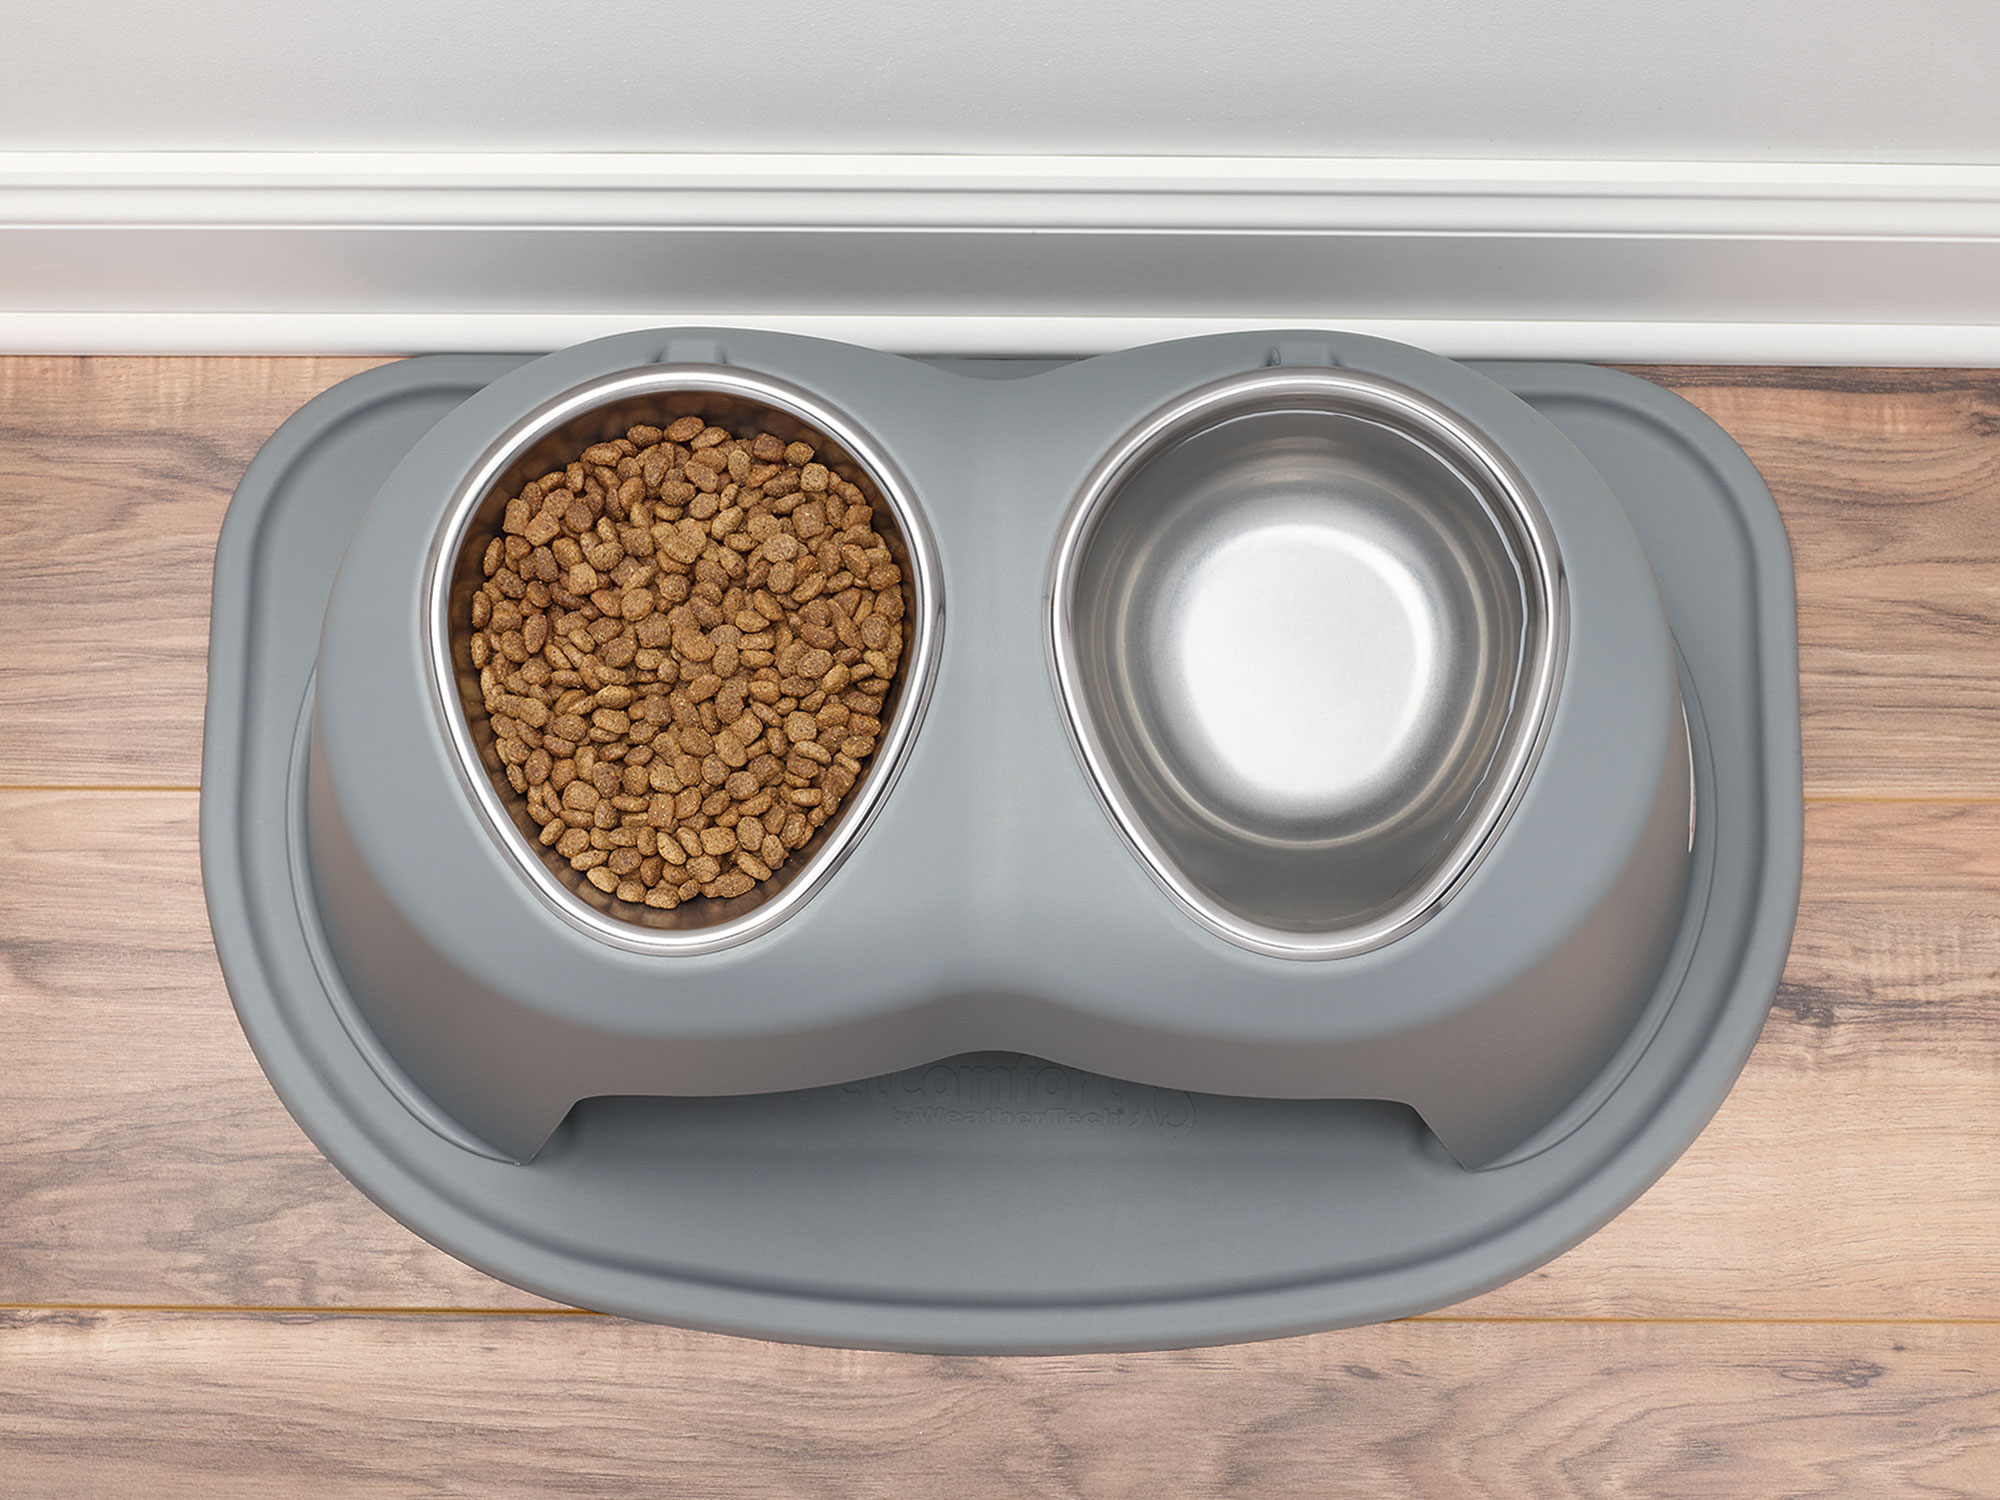 WeatherTech dog bowl stand and protective mat keep mealtime messes from your pet off your floors.